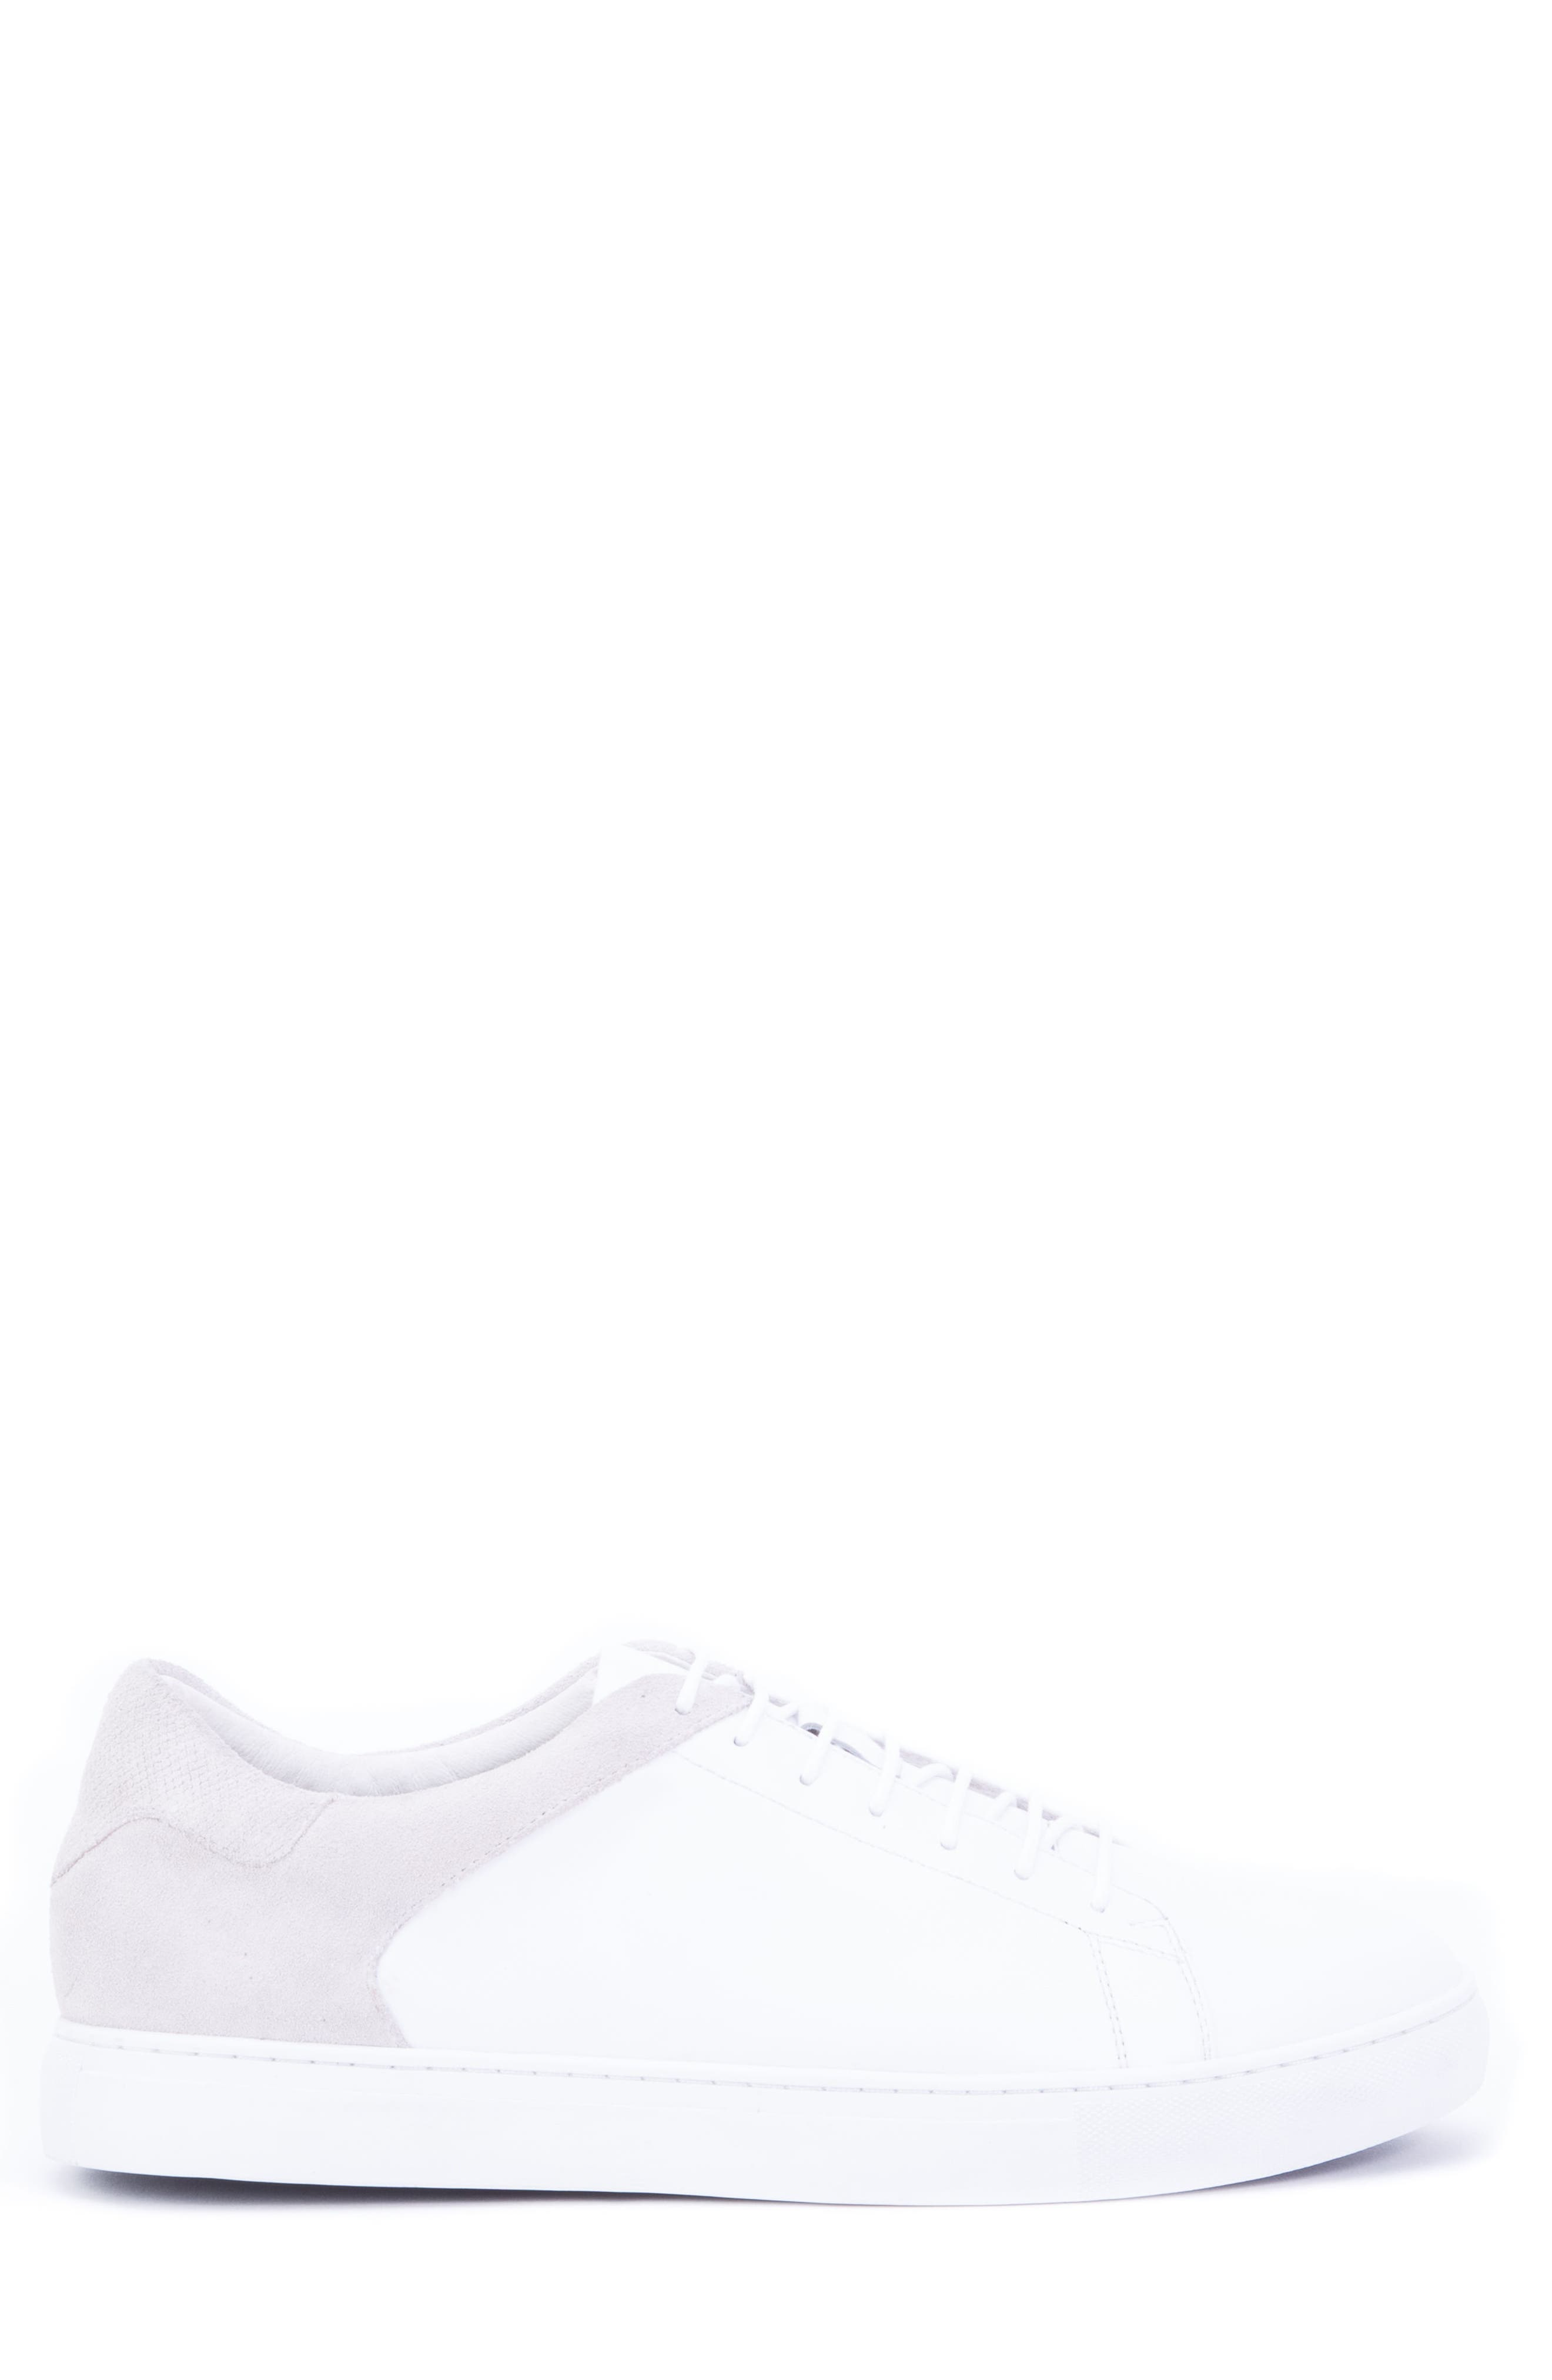 Cue Low Top Sneaker,                             Alternate thumbnail 3, color,                             WHITE LEATHER/ SUEDE